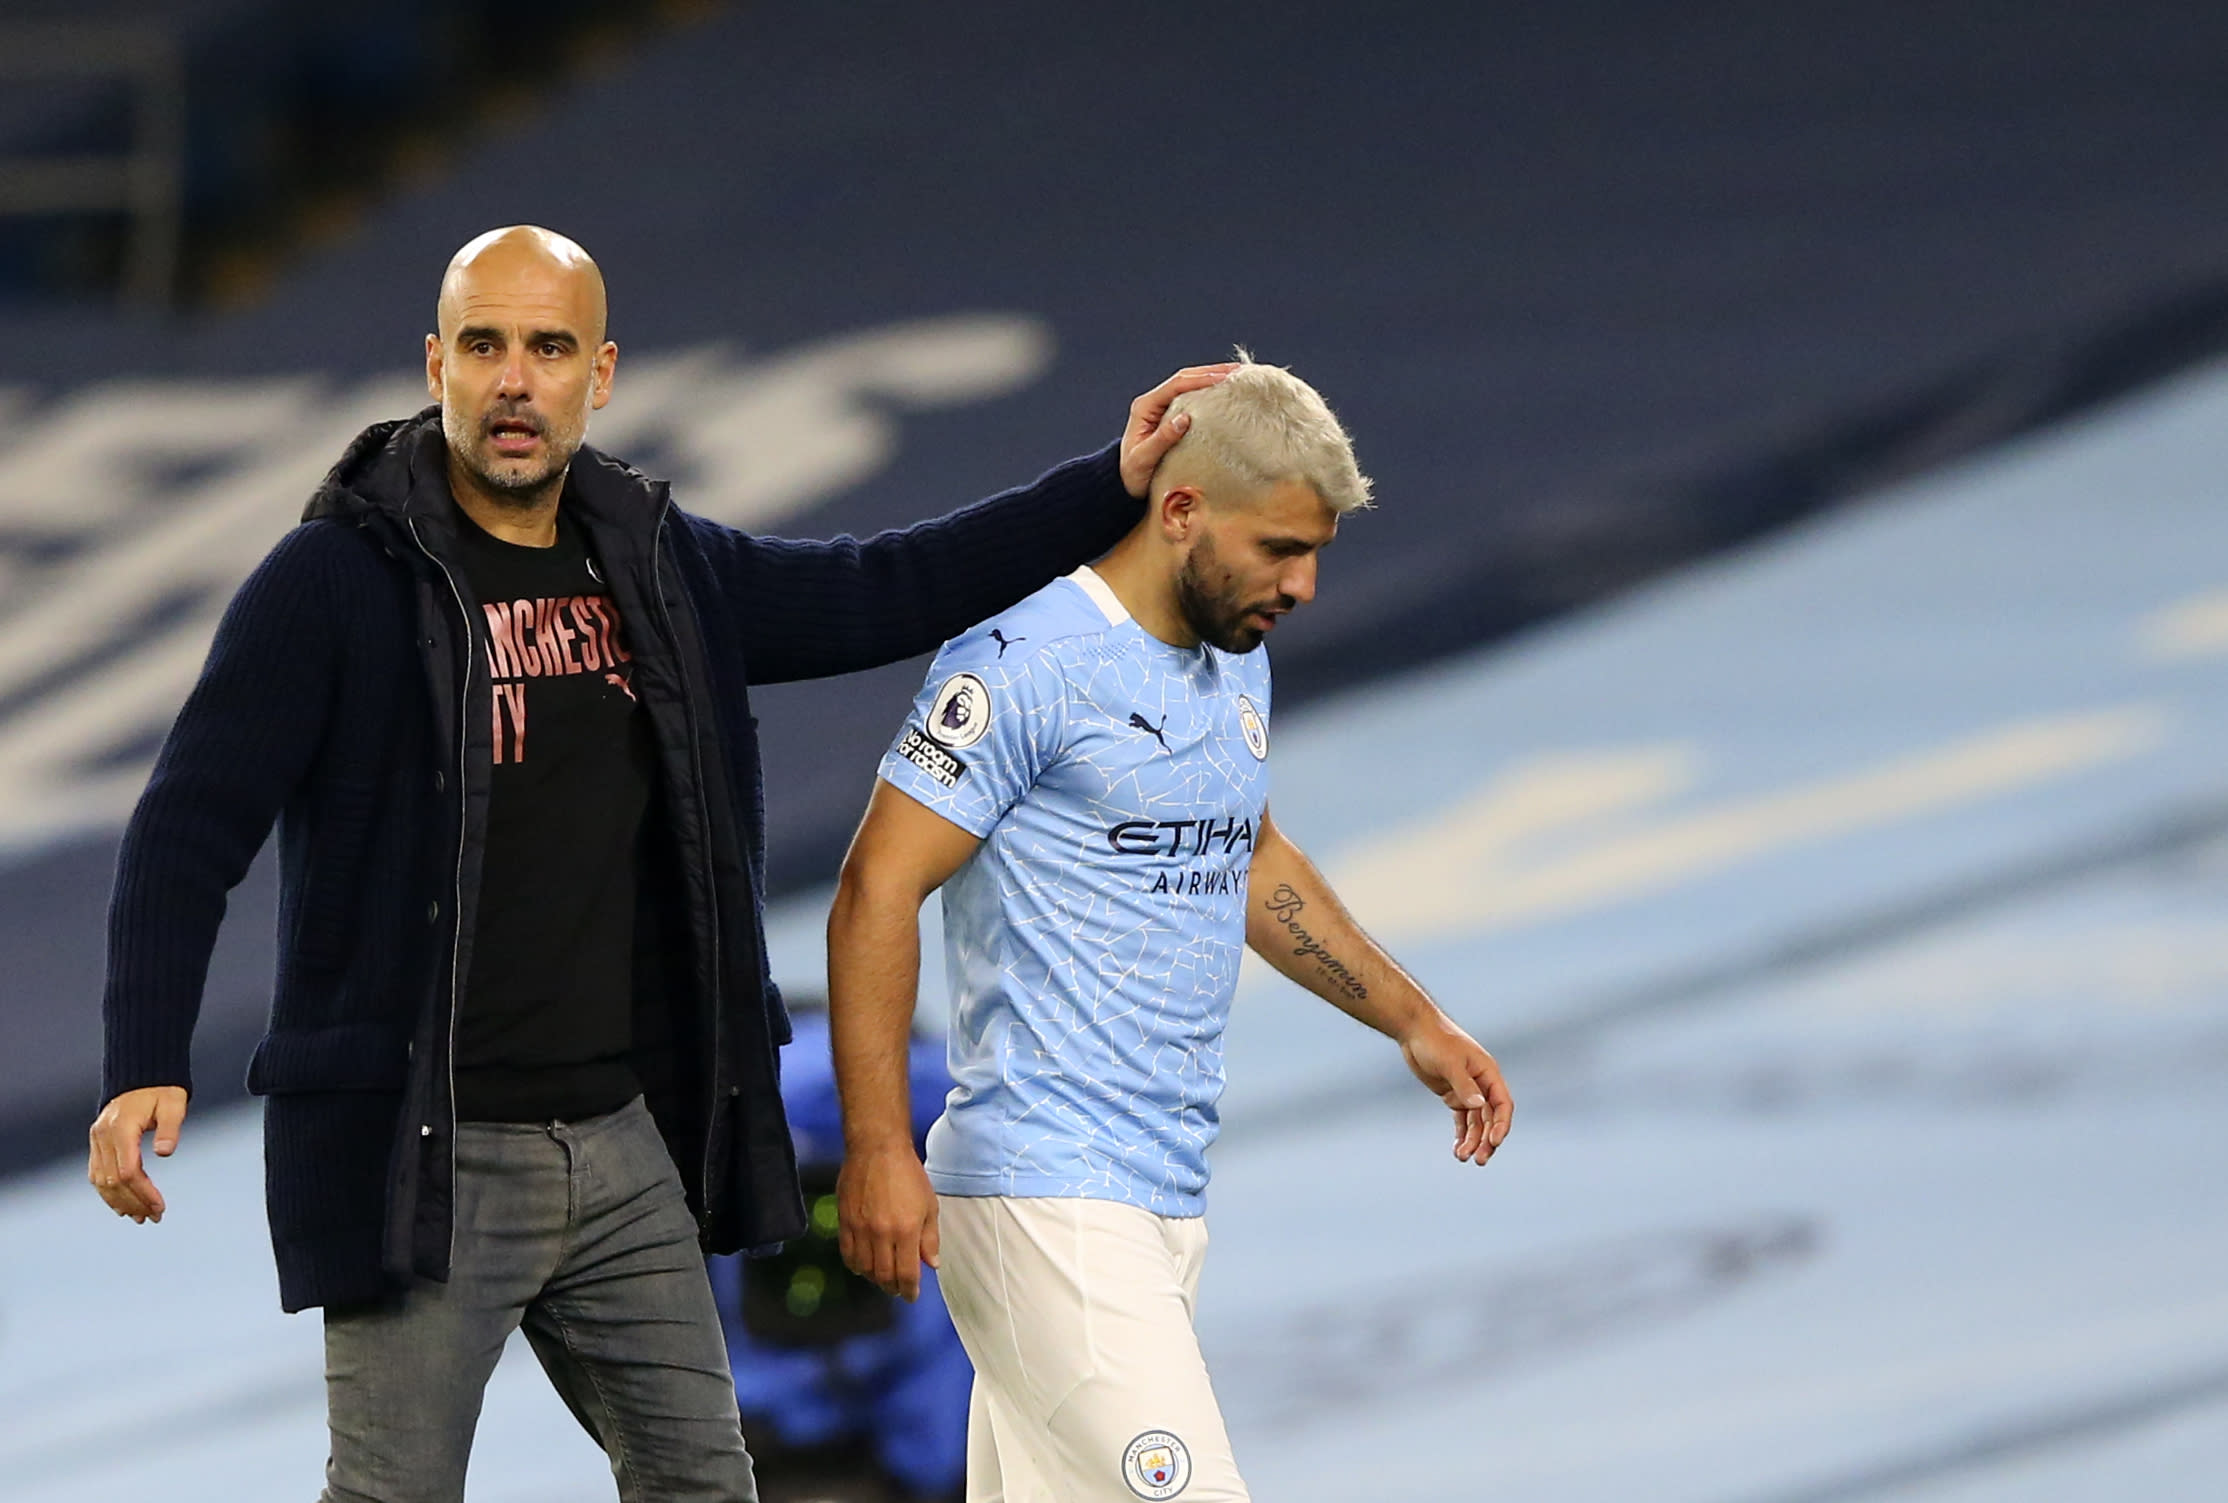 Manchester City's Sergio Aguero passes by Manchester City's head coach Pep Guardiola after being substituted during the English Premier League soccer match between Manchester City and Arsenal at the Etihad stadium in Manchester, England, Saturday, Oct. 17, 2020. (Alex Livesey/Pool via AP)